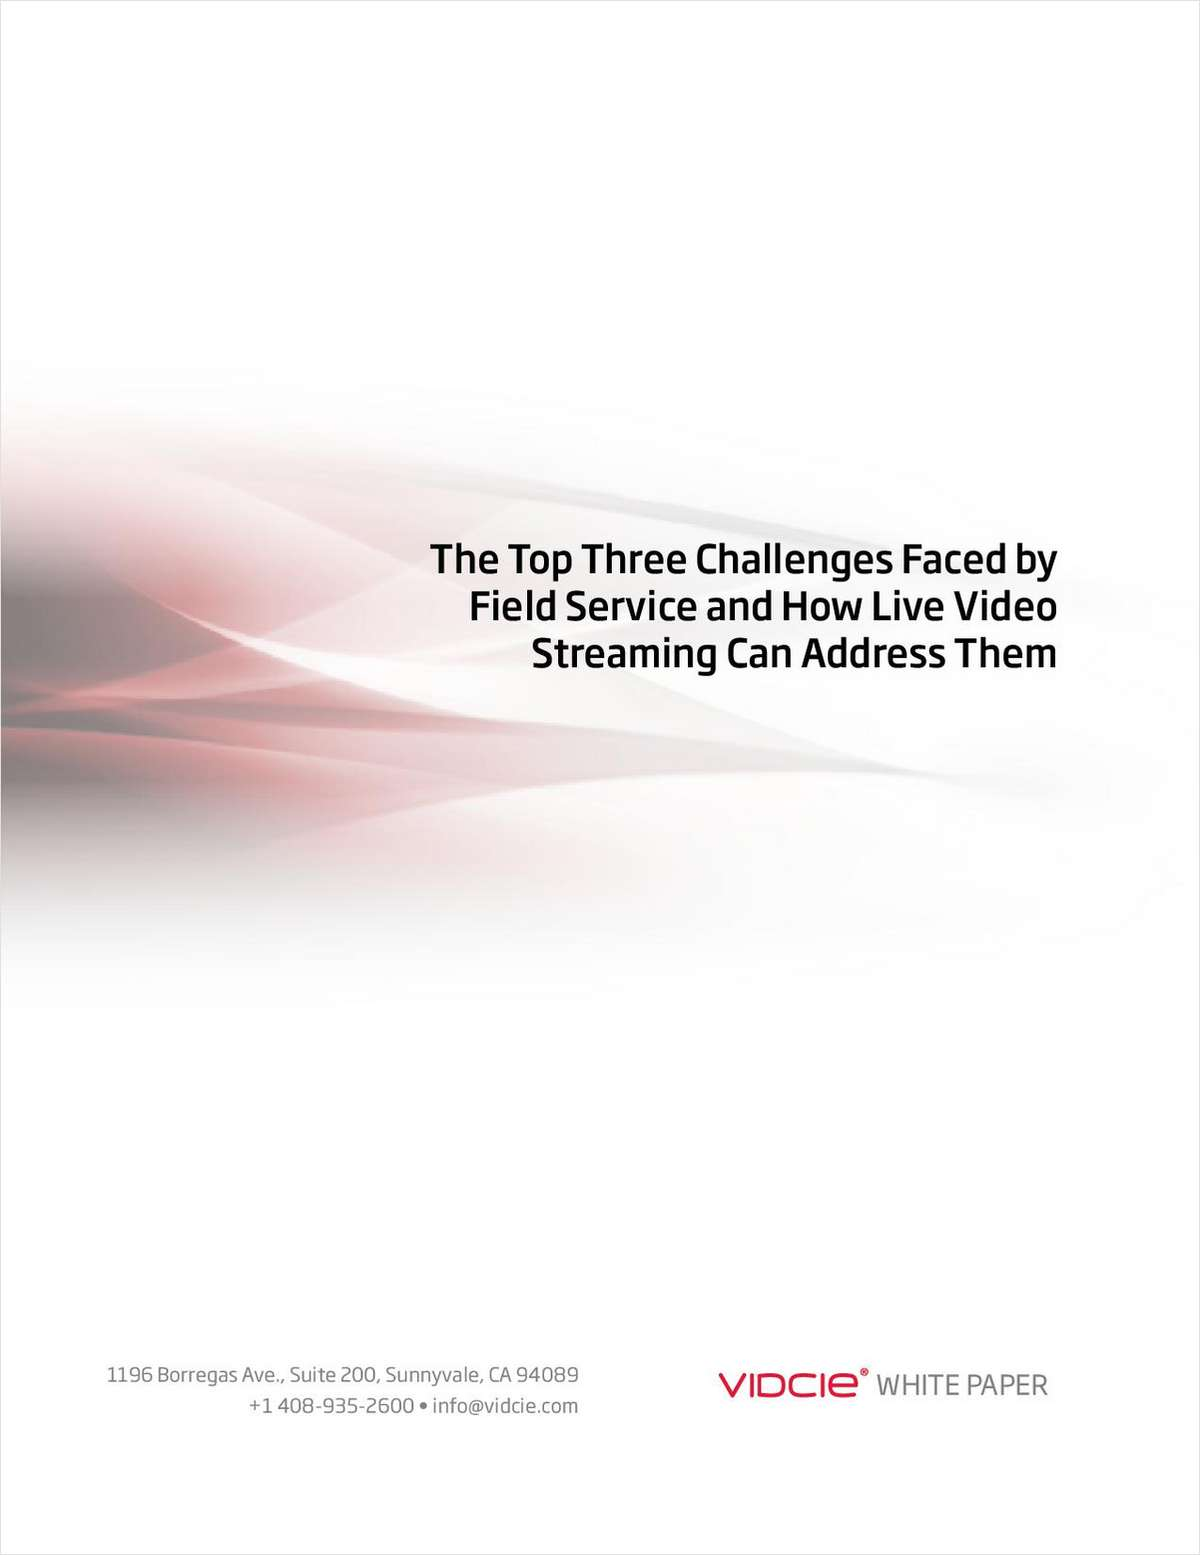 The Top Three Challenges Faced by Field Service and How Live Video Streaming Can Address Them